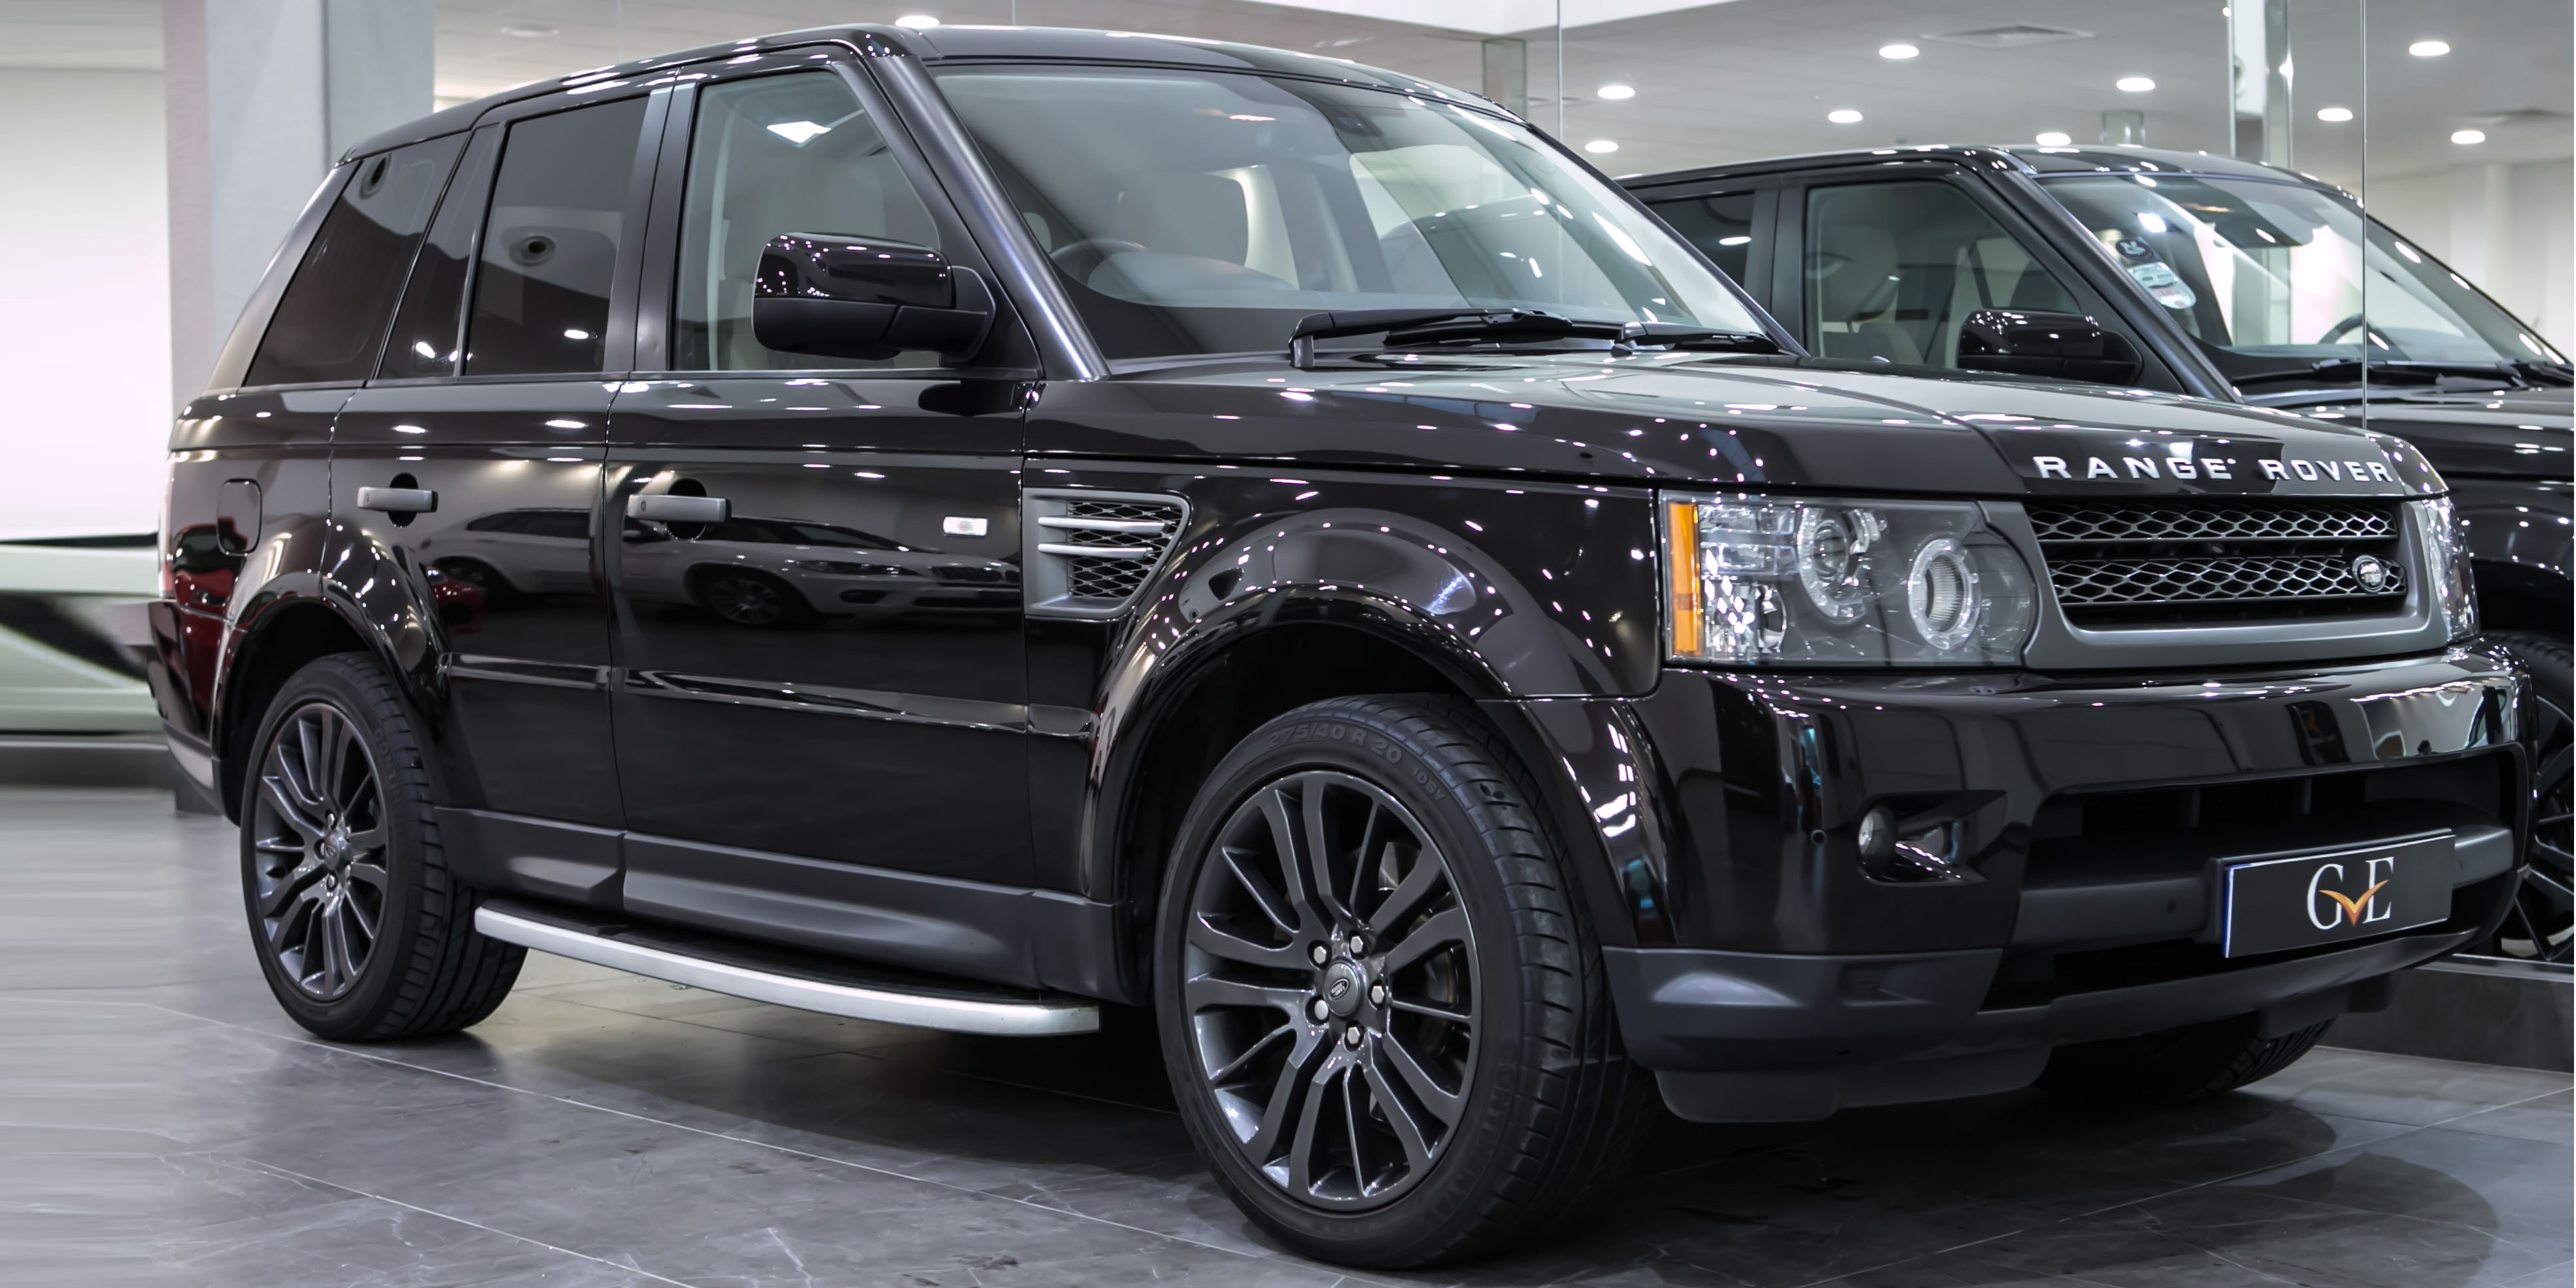 2009 land rover range rover sport partsopen. Black Bedroom Furniture Sets. Home Design Ideas